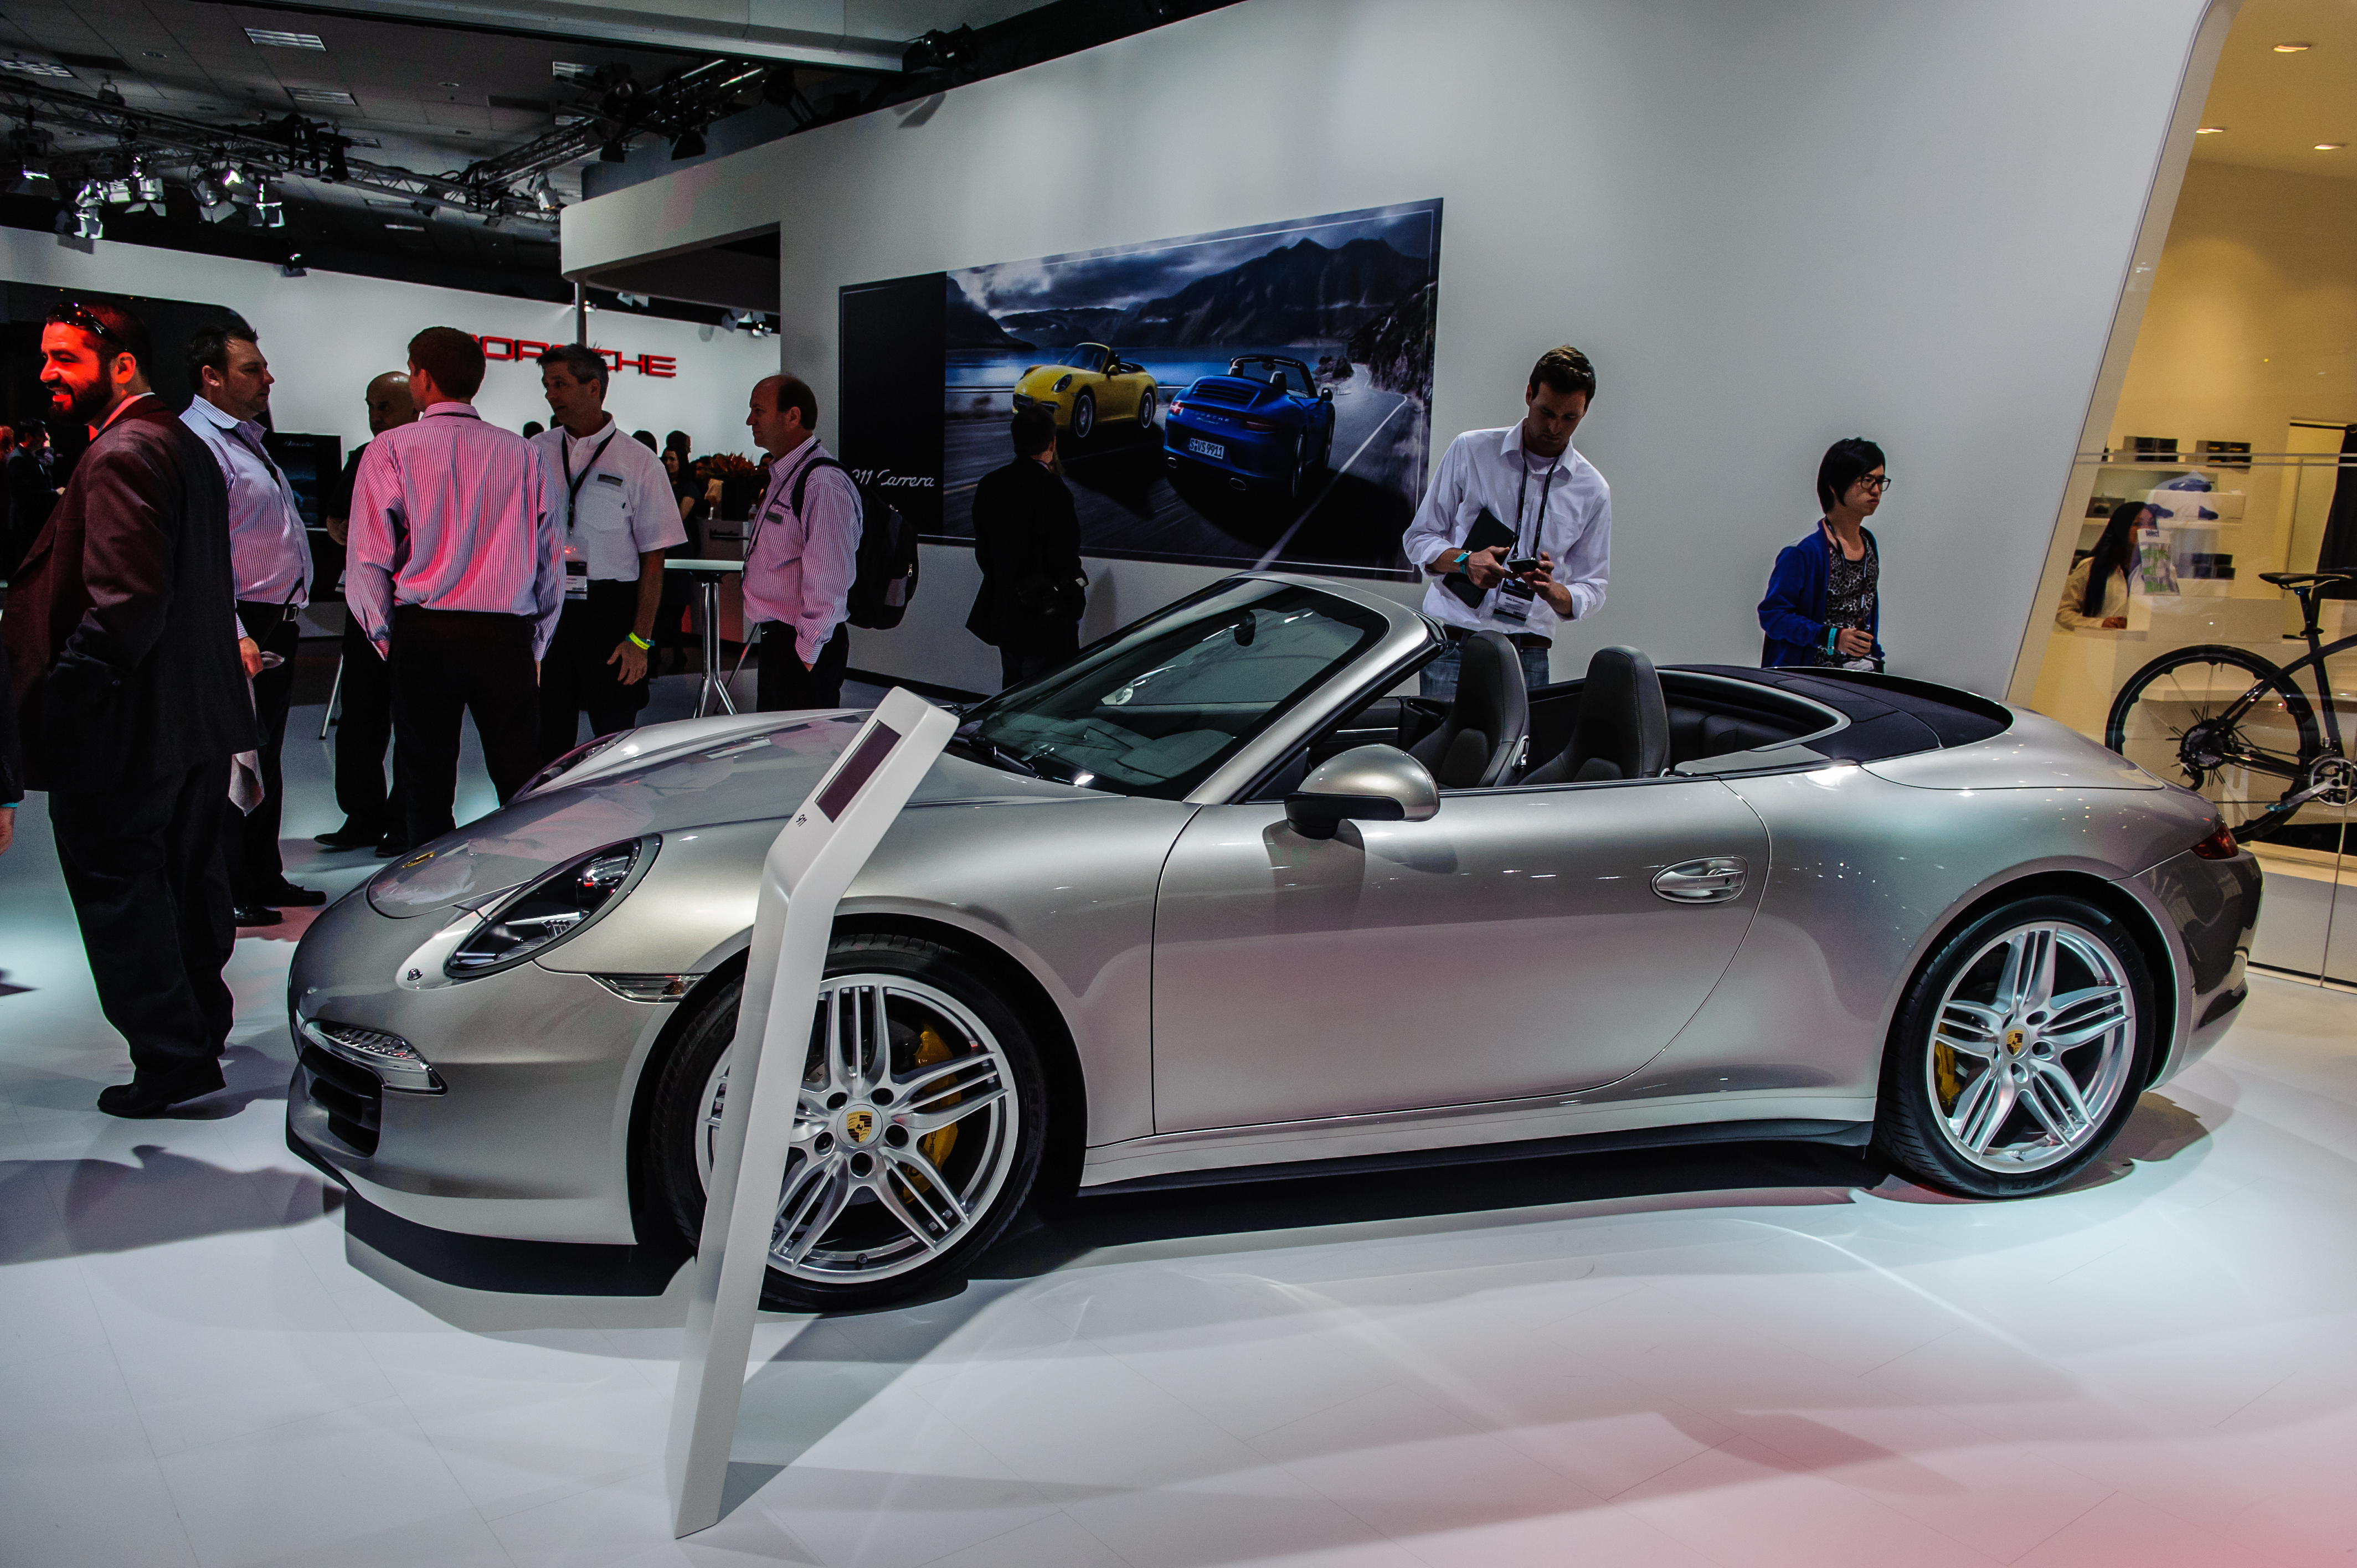 2012 Porsche 911 Carrera 4S at 2012 L.A. Auto Show by lexster05